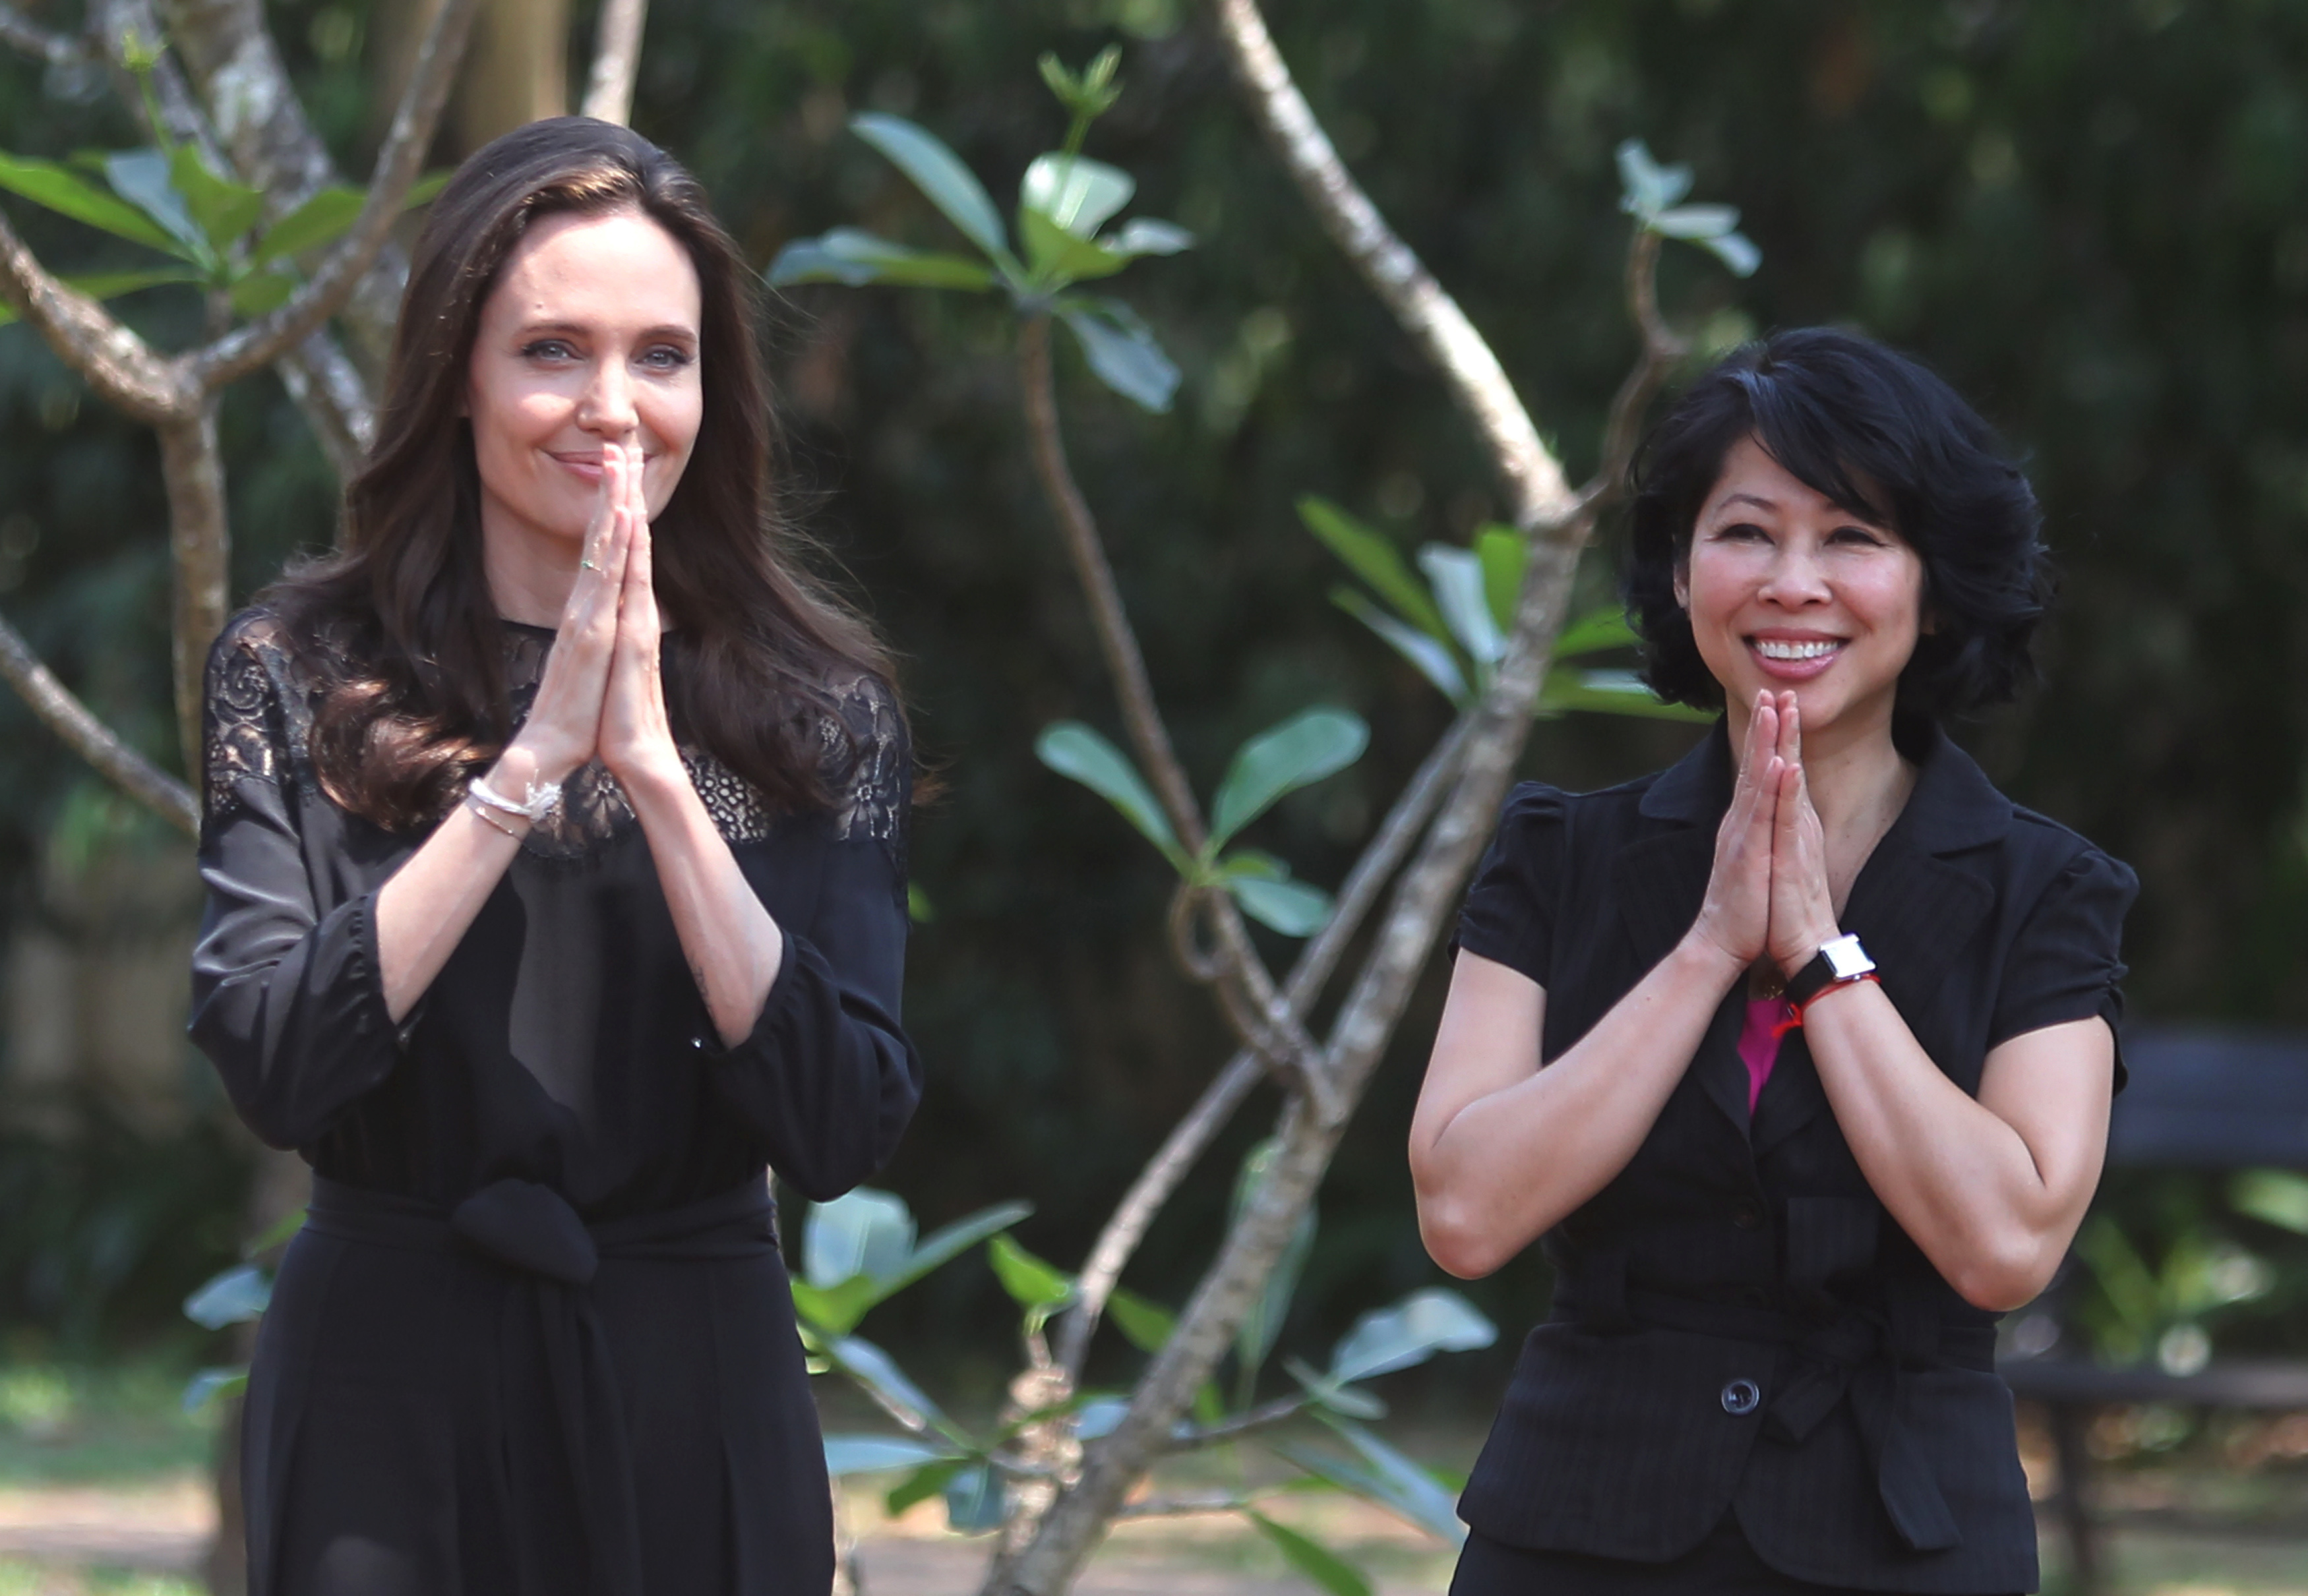 Actress Angelina Jolie (L) and Cambodian-born American human-rights activist and lecturer Loung Ung greet as they arrive for a news conference at hotel in Siem Reap province, Cambodia, February 18, 2017. REUTERS/Samrang Pring - RTSZ8IC